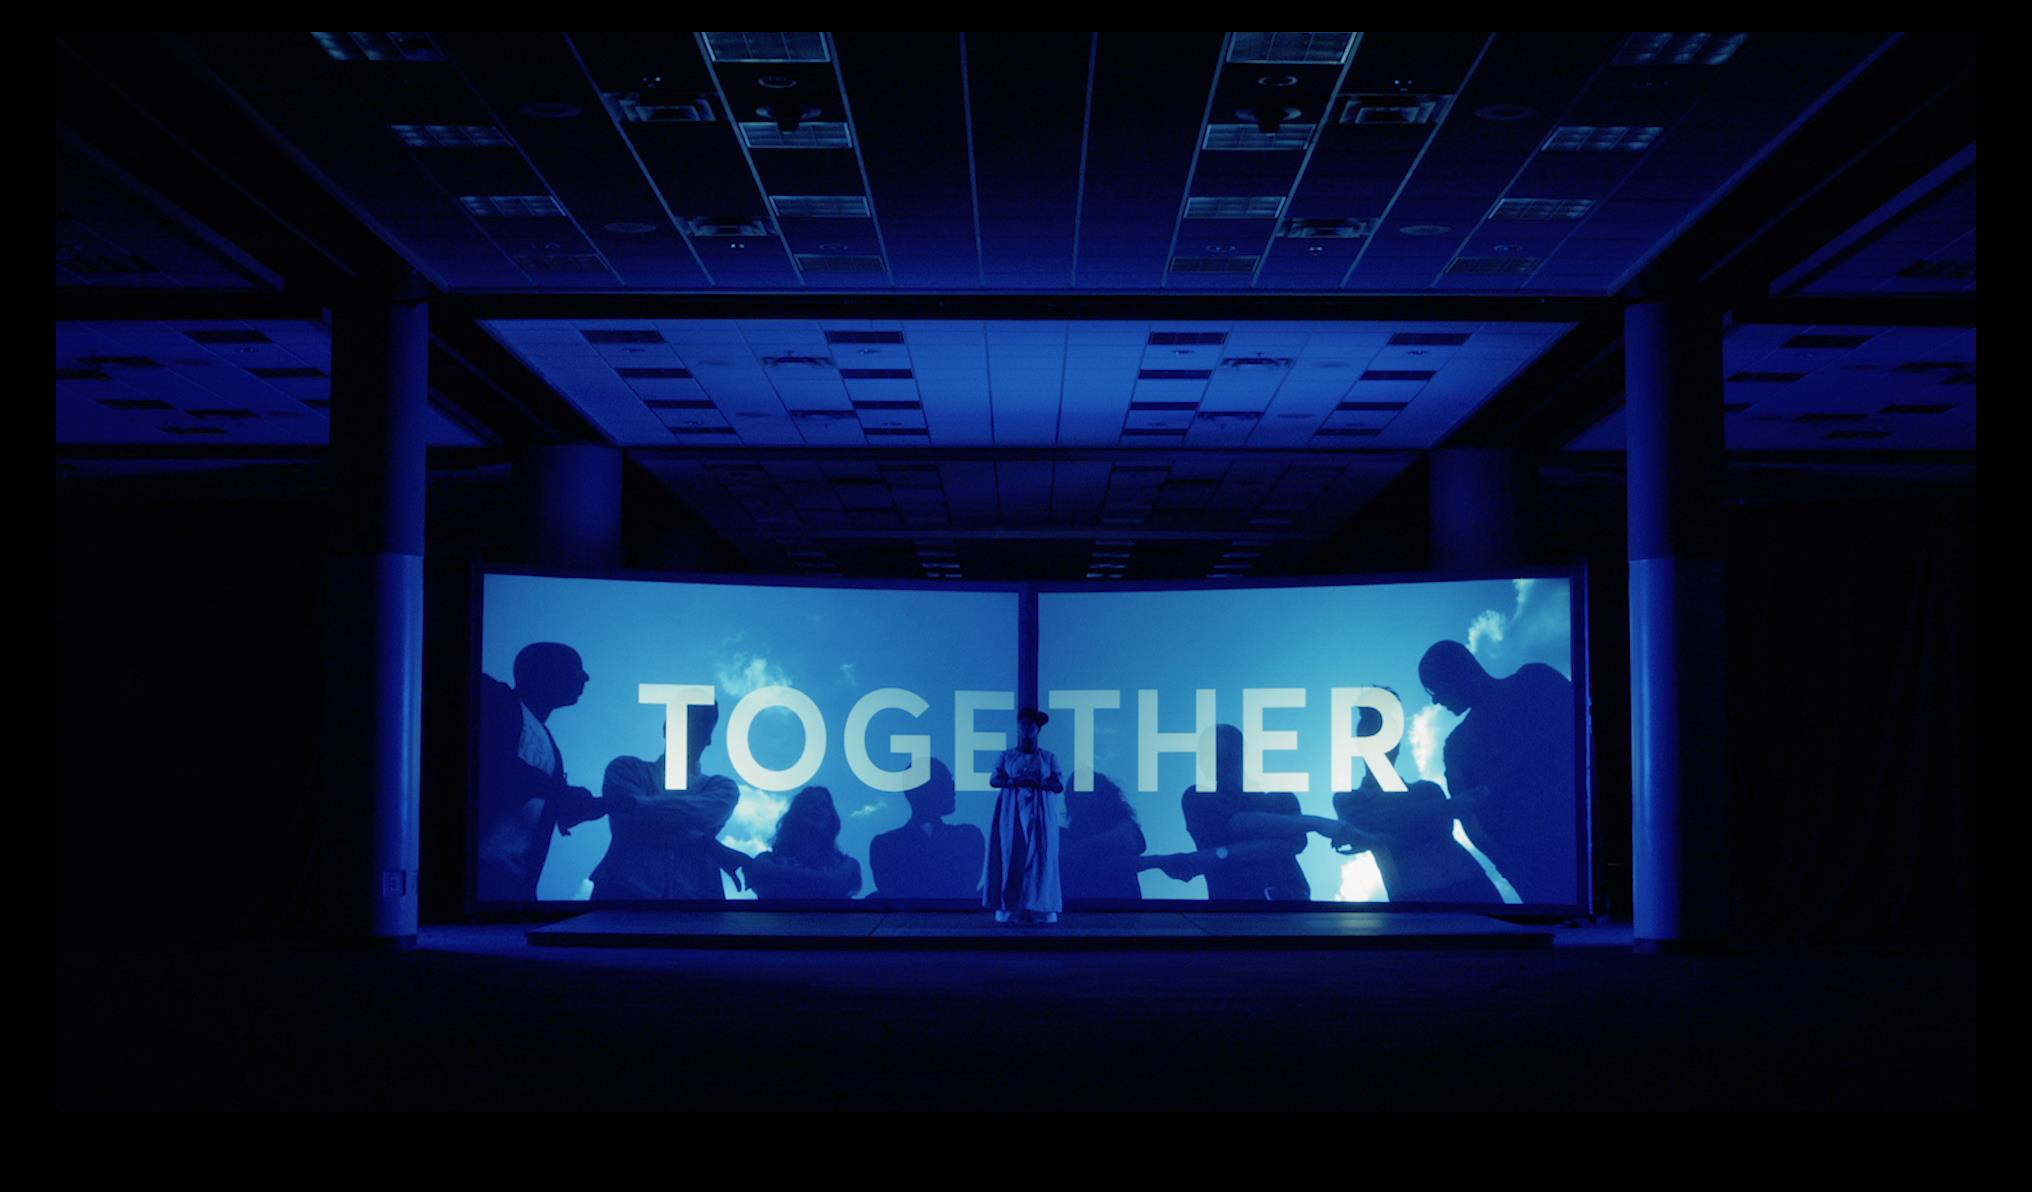 Hyatt | Come Together